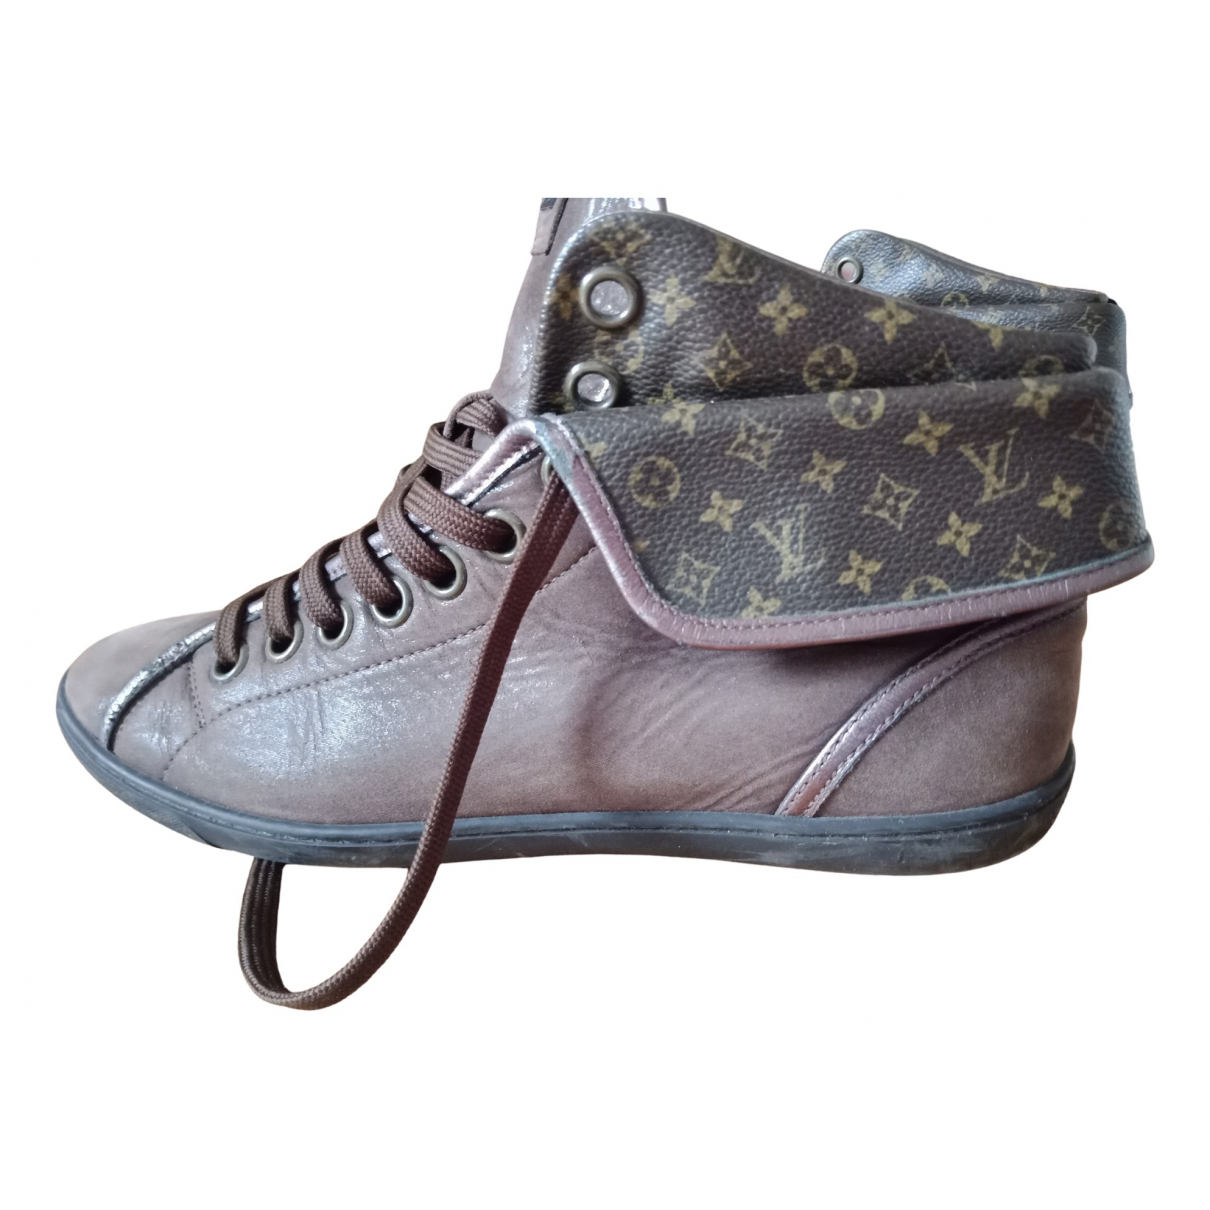 Louis Vuitton \N Brown Leather Trainers for Women 37.5 EU